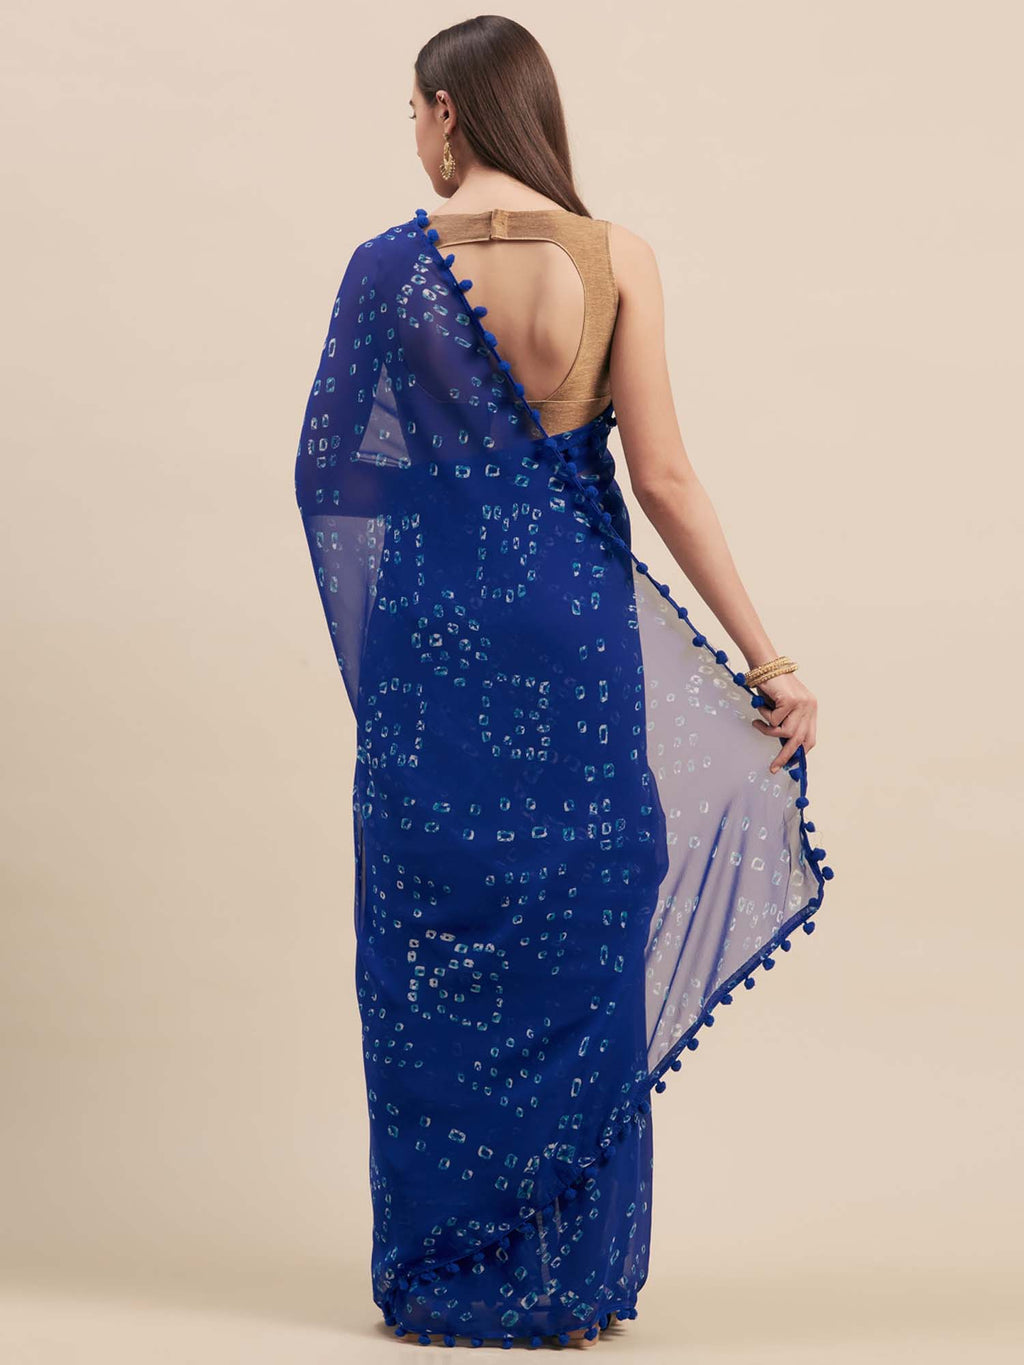 Blue Poly Georgette Bandhani Design Saree With Pom Pom Lace - Riviera Closet